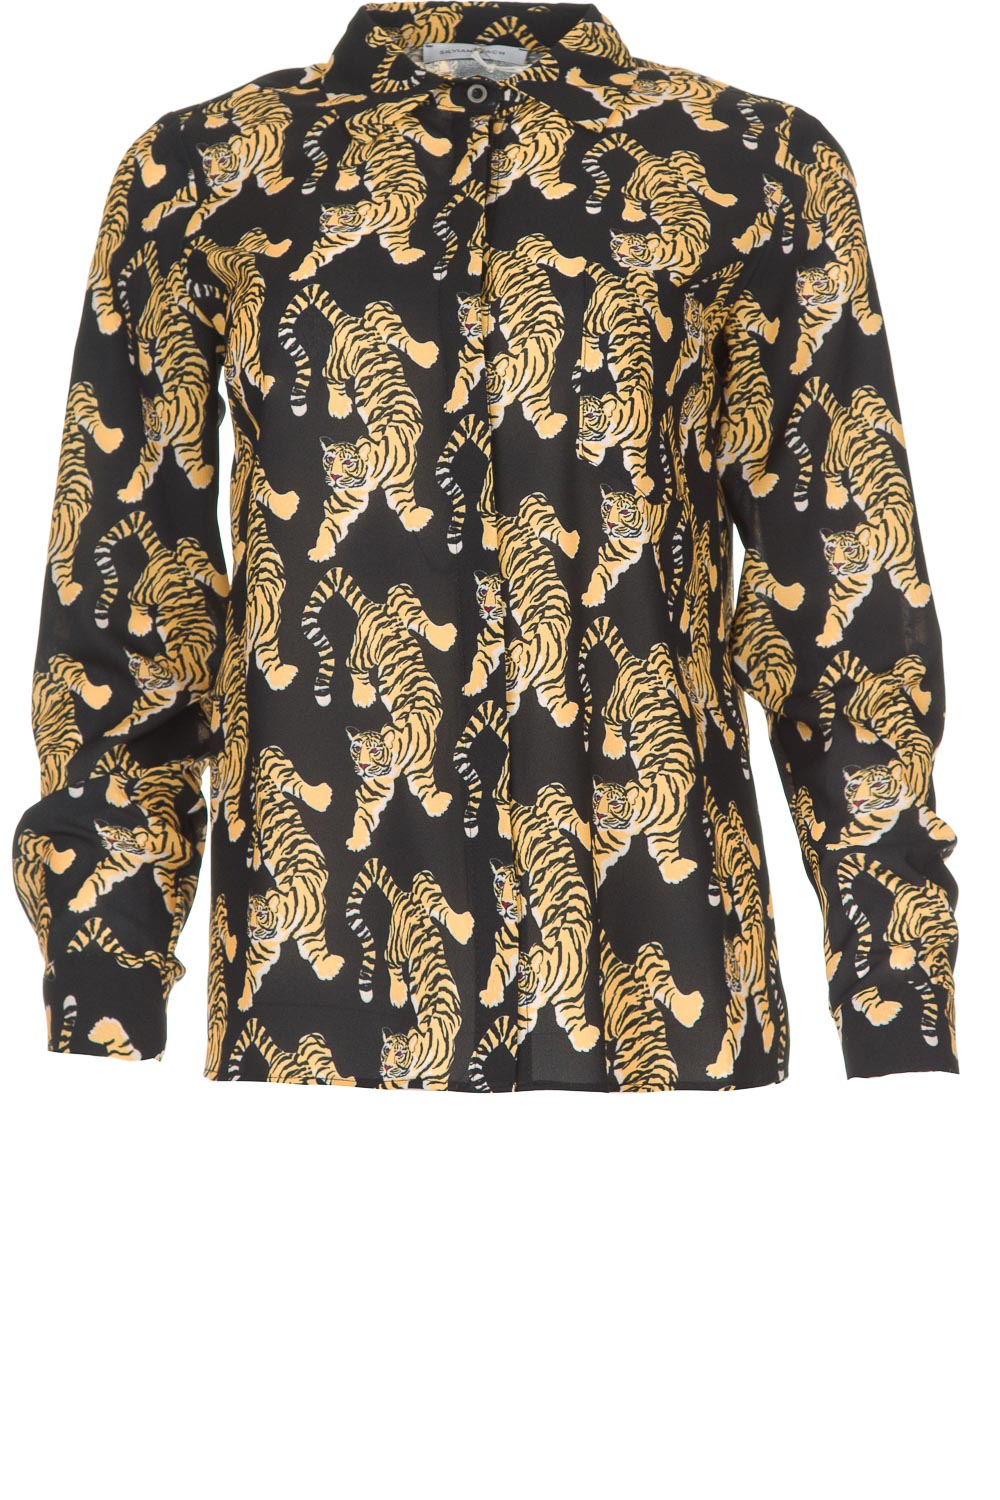 cheap for discount ac1cc 3c3c2 Blouse with print Capuanis   black